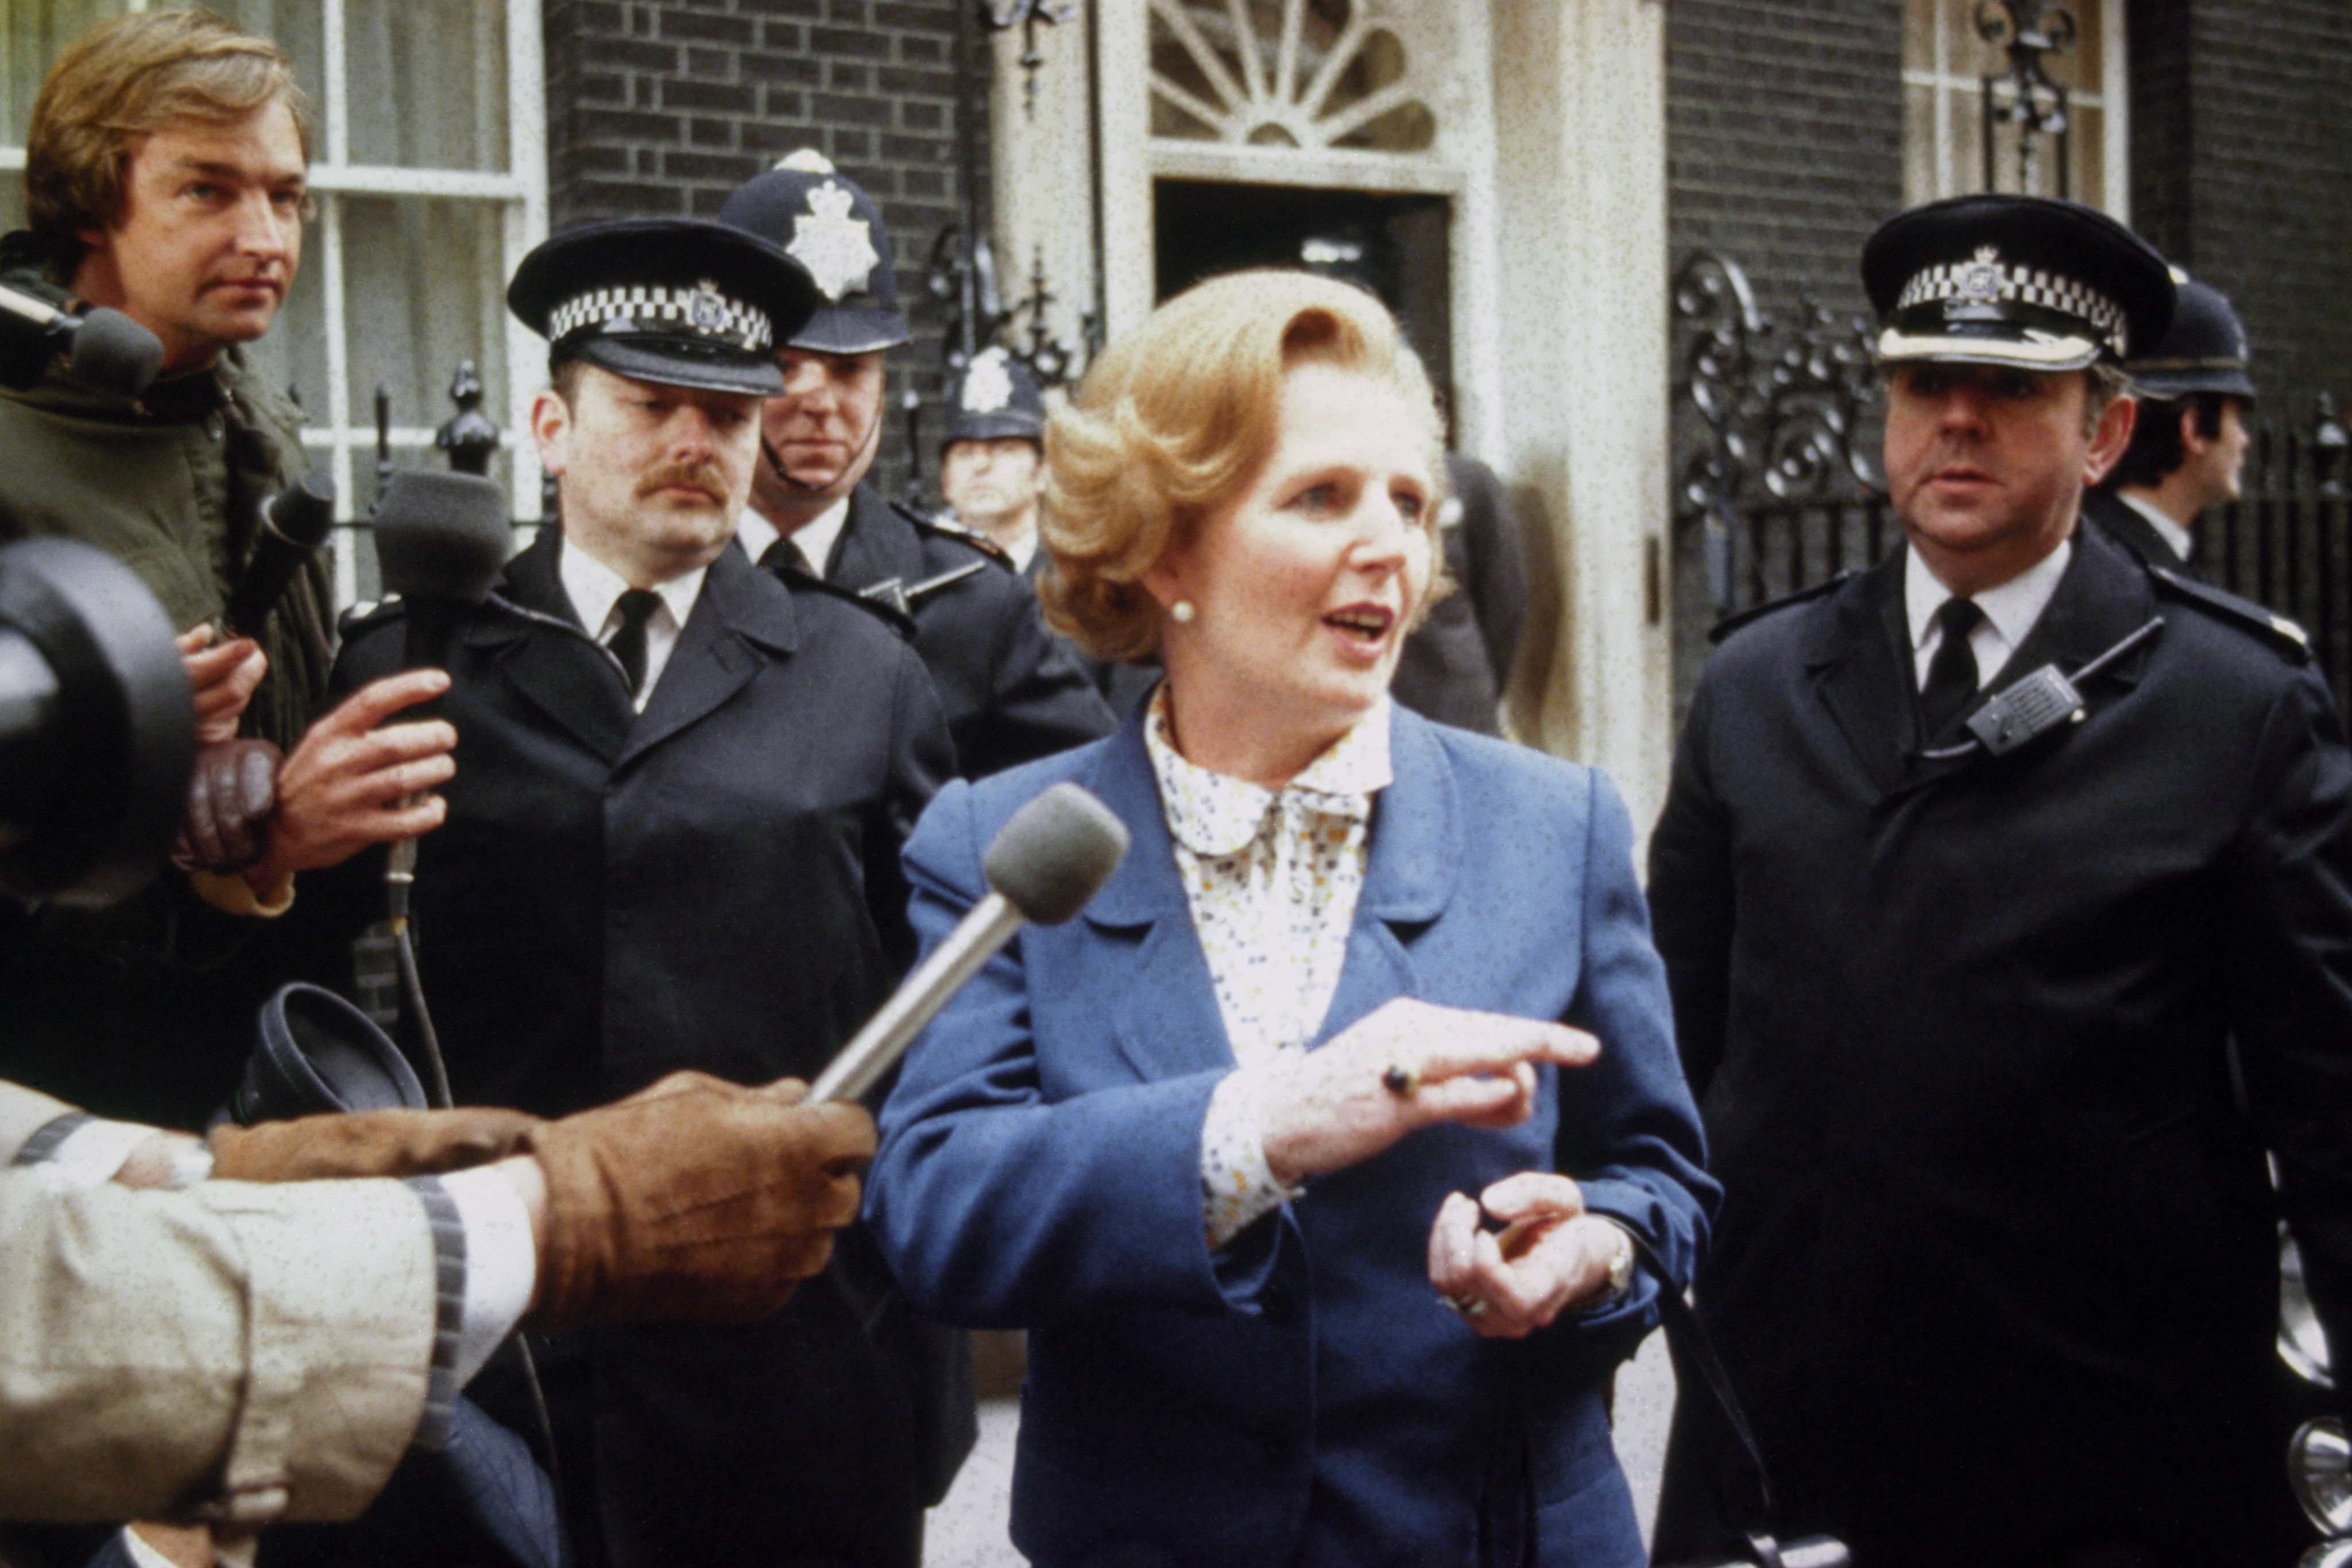 Margaret Thatcher arrives at Downing Street after her election as Britain's first female Prime Minister